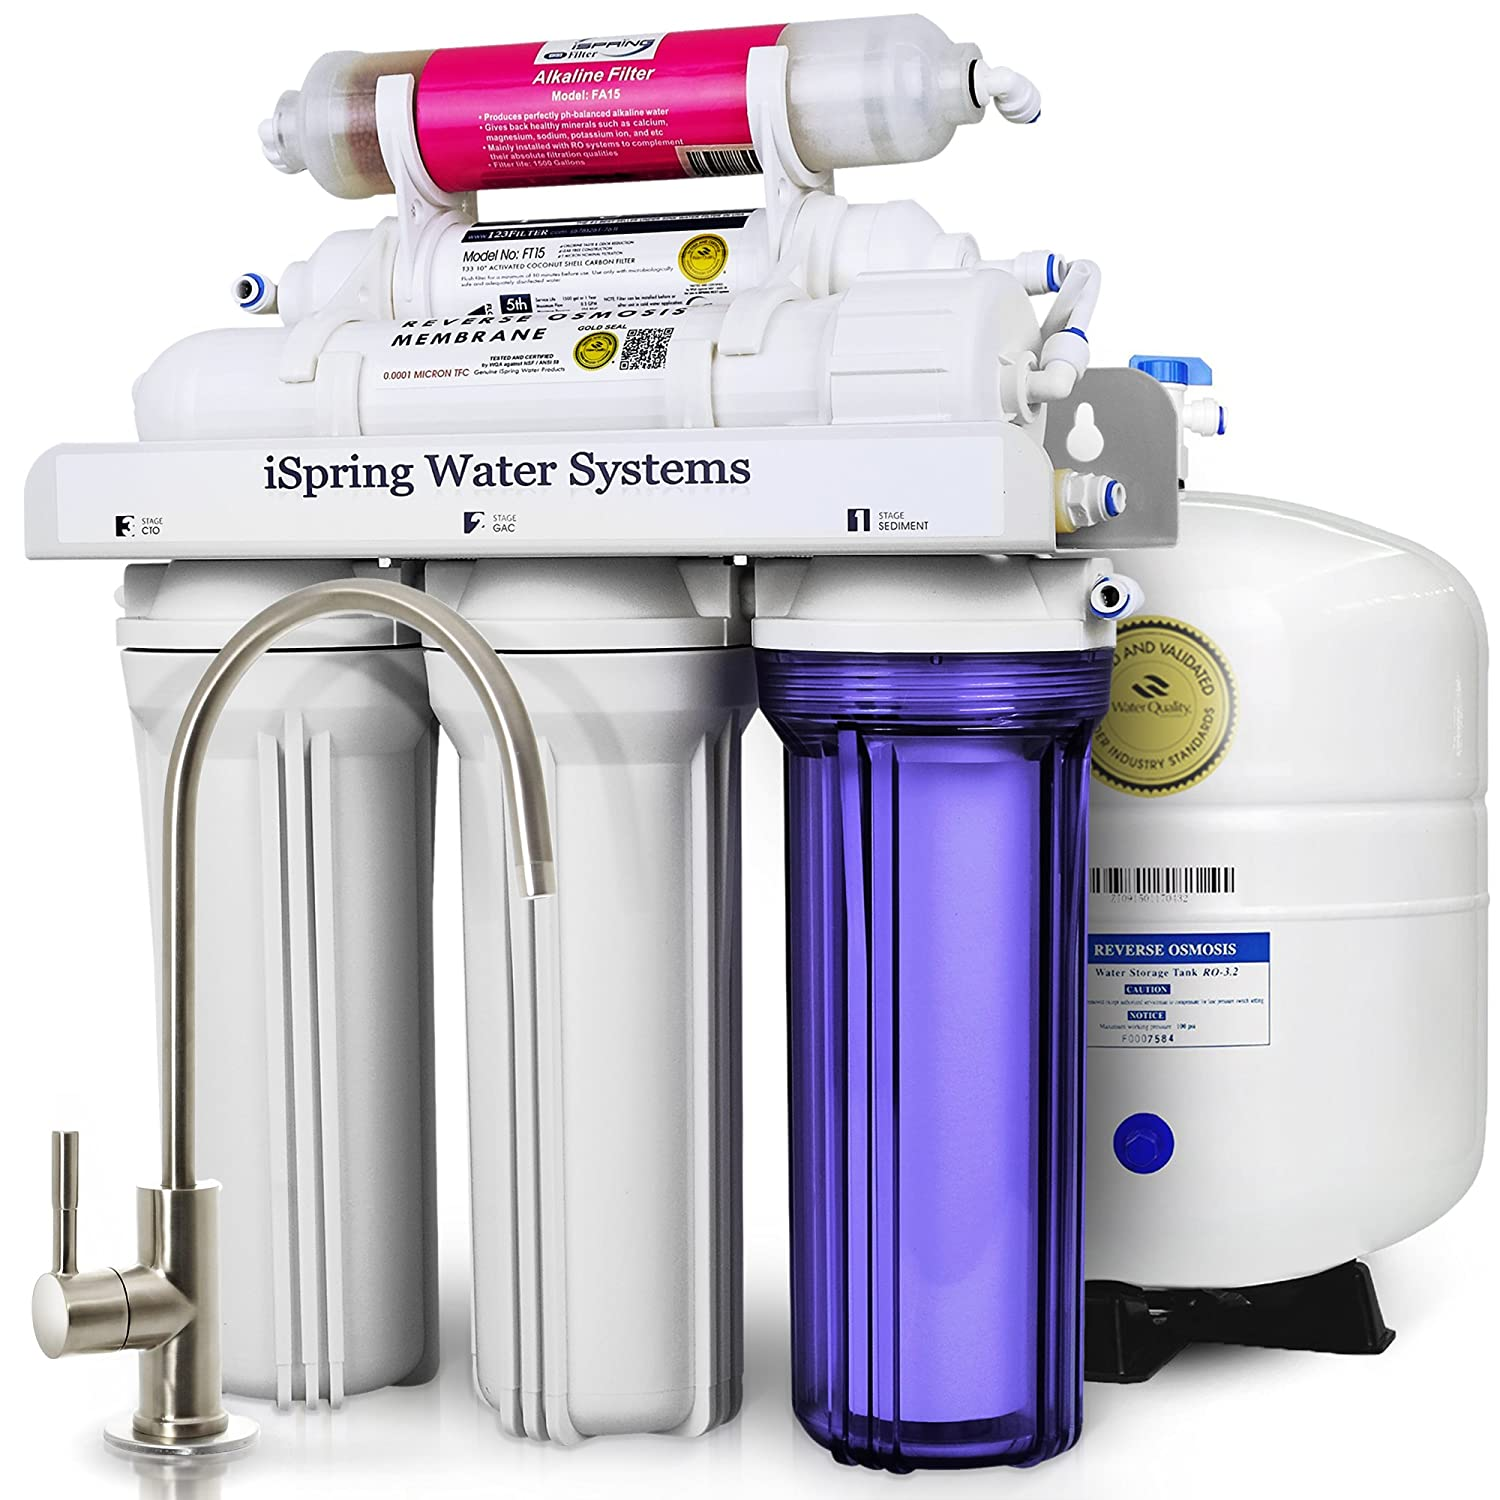 ISpring RCC7AK 6 Stage Under Sink Reverse Osmosis Drinking Water Filtration  System With Alkaline Remineralization Filter   75 GPD   Undersink Water ...